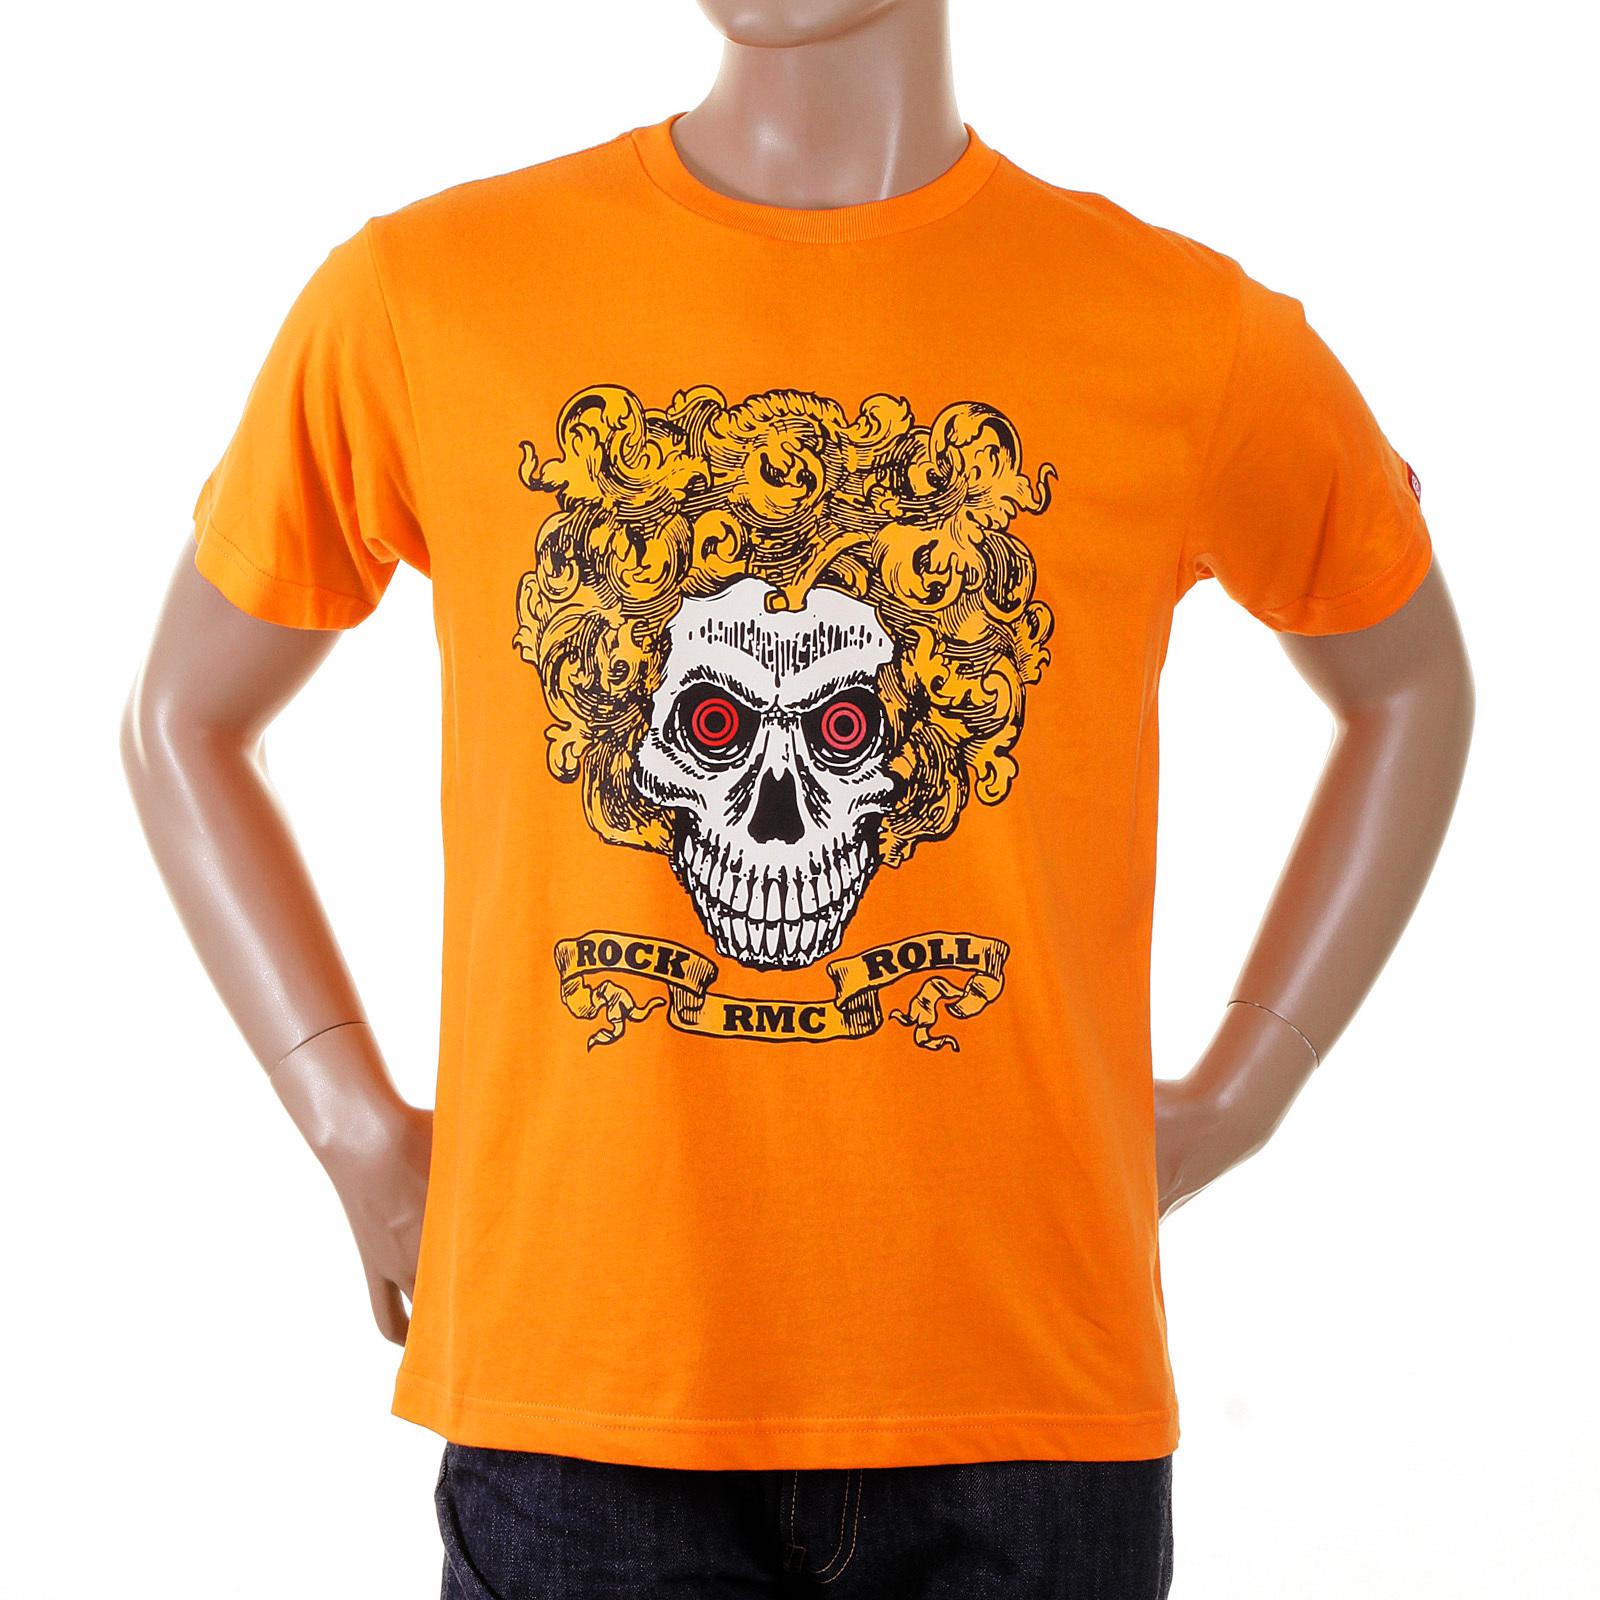 Buy Rock And Roll Skull Printed T Shirt From Red Monkey